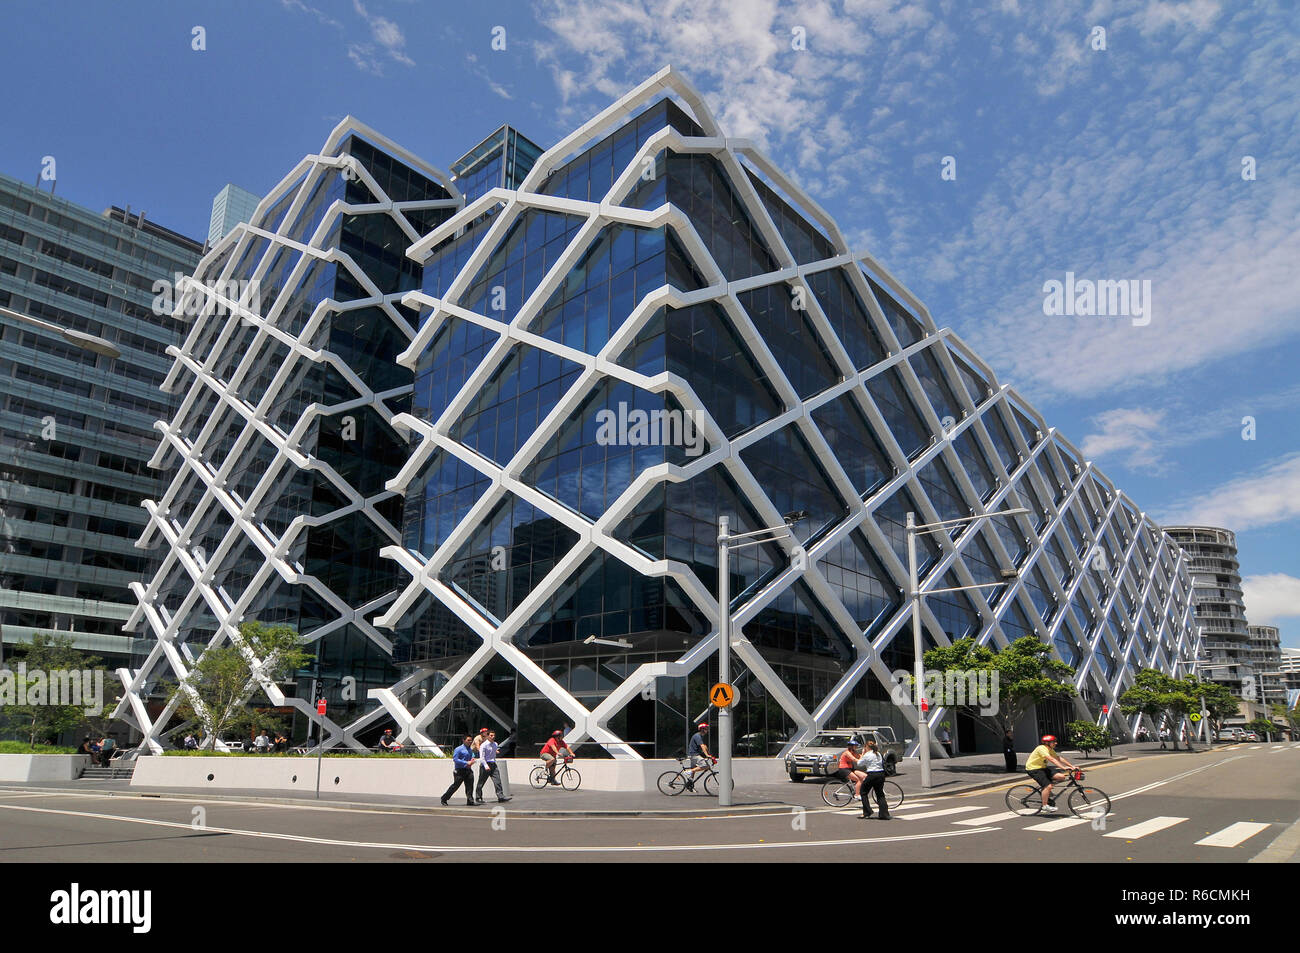 Australia, Sydney, New South Wales, Central Business District - Stock Image